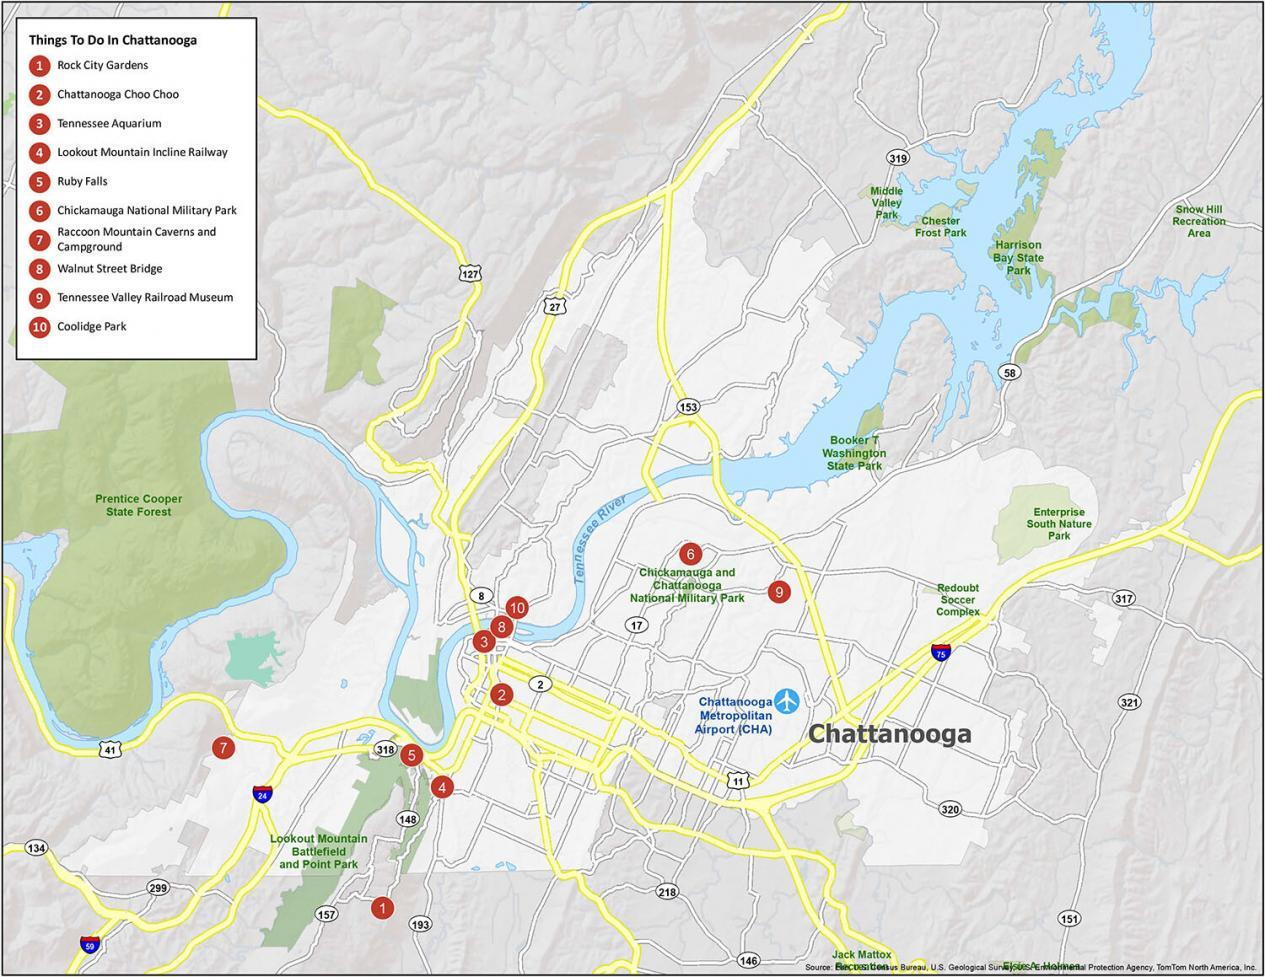 Chattanooga Things To Do